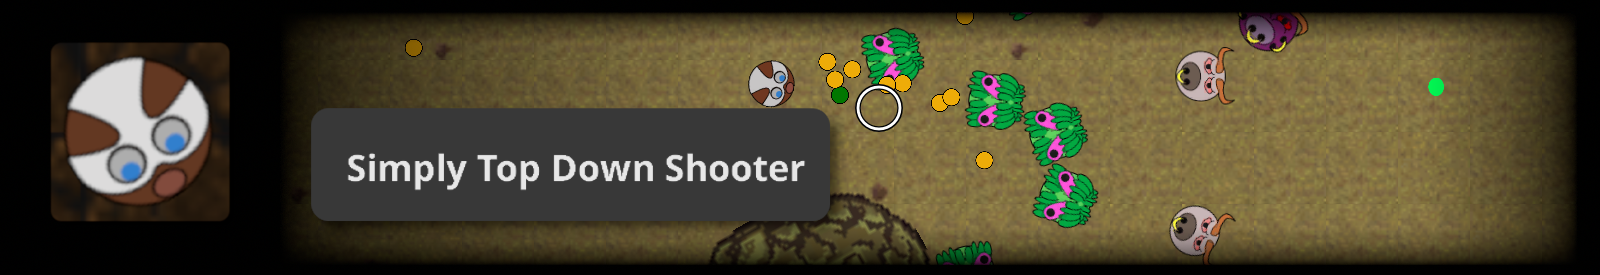 Simply Top Down Shooter